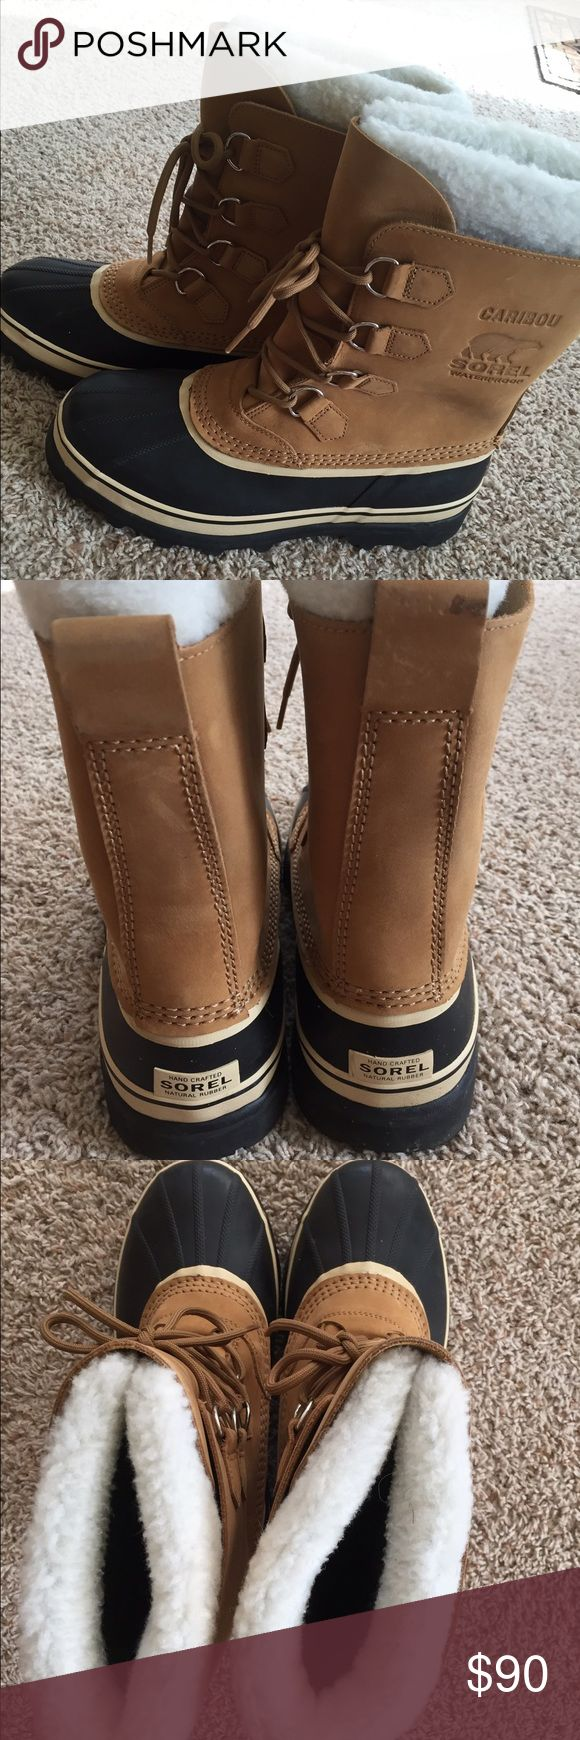 Brand New Sorel Caribou Boots Received these as a present. They have never been worn! Super warm! Send me an offer! Sorel Shoes Winter & Rain Boots